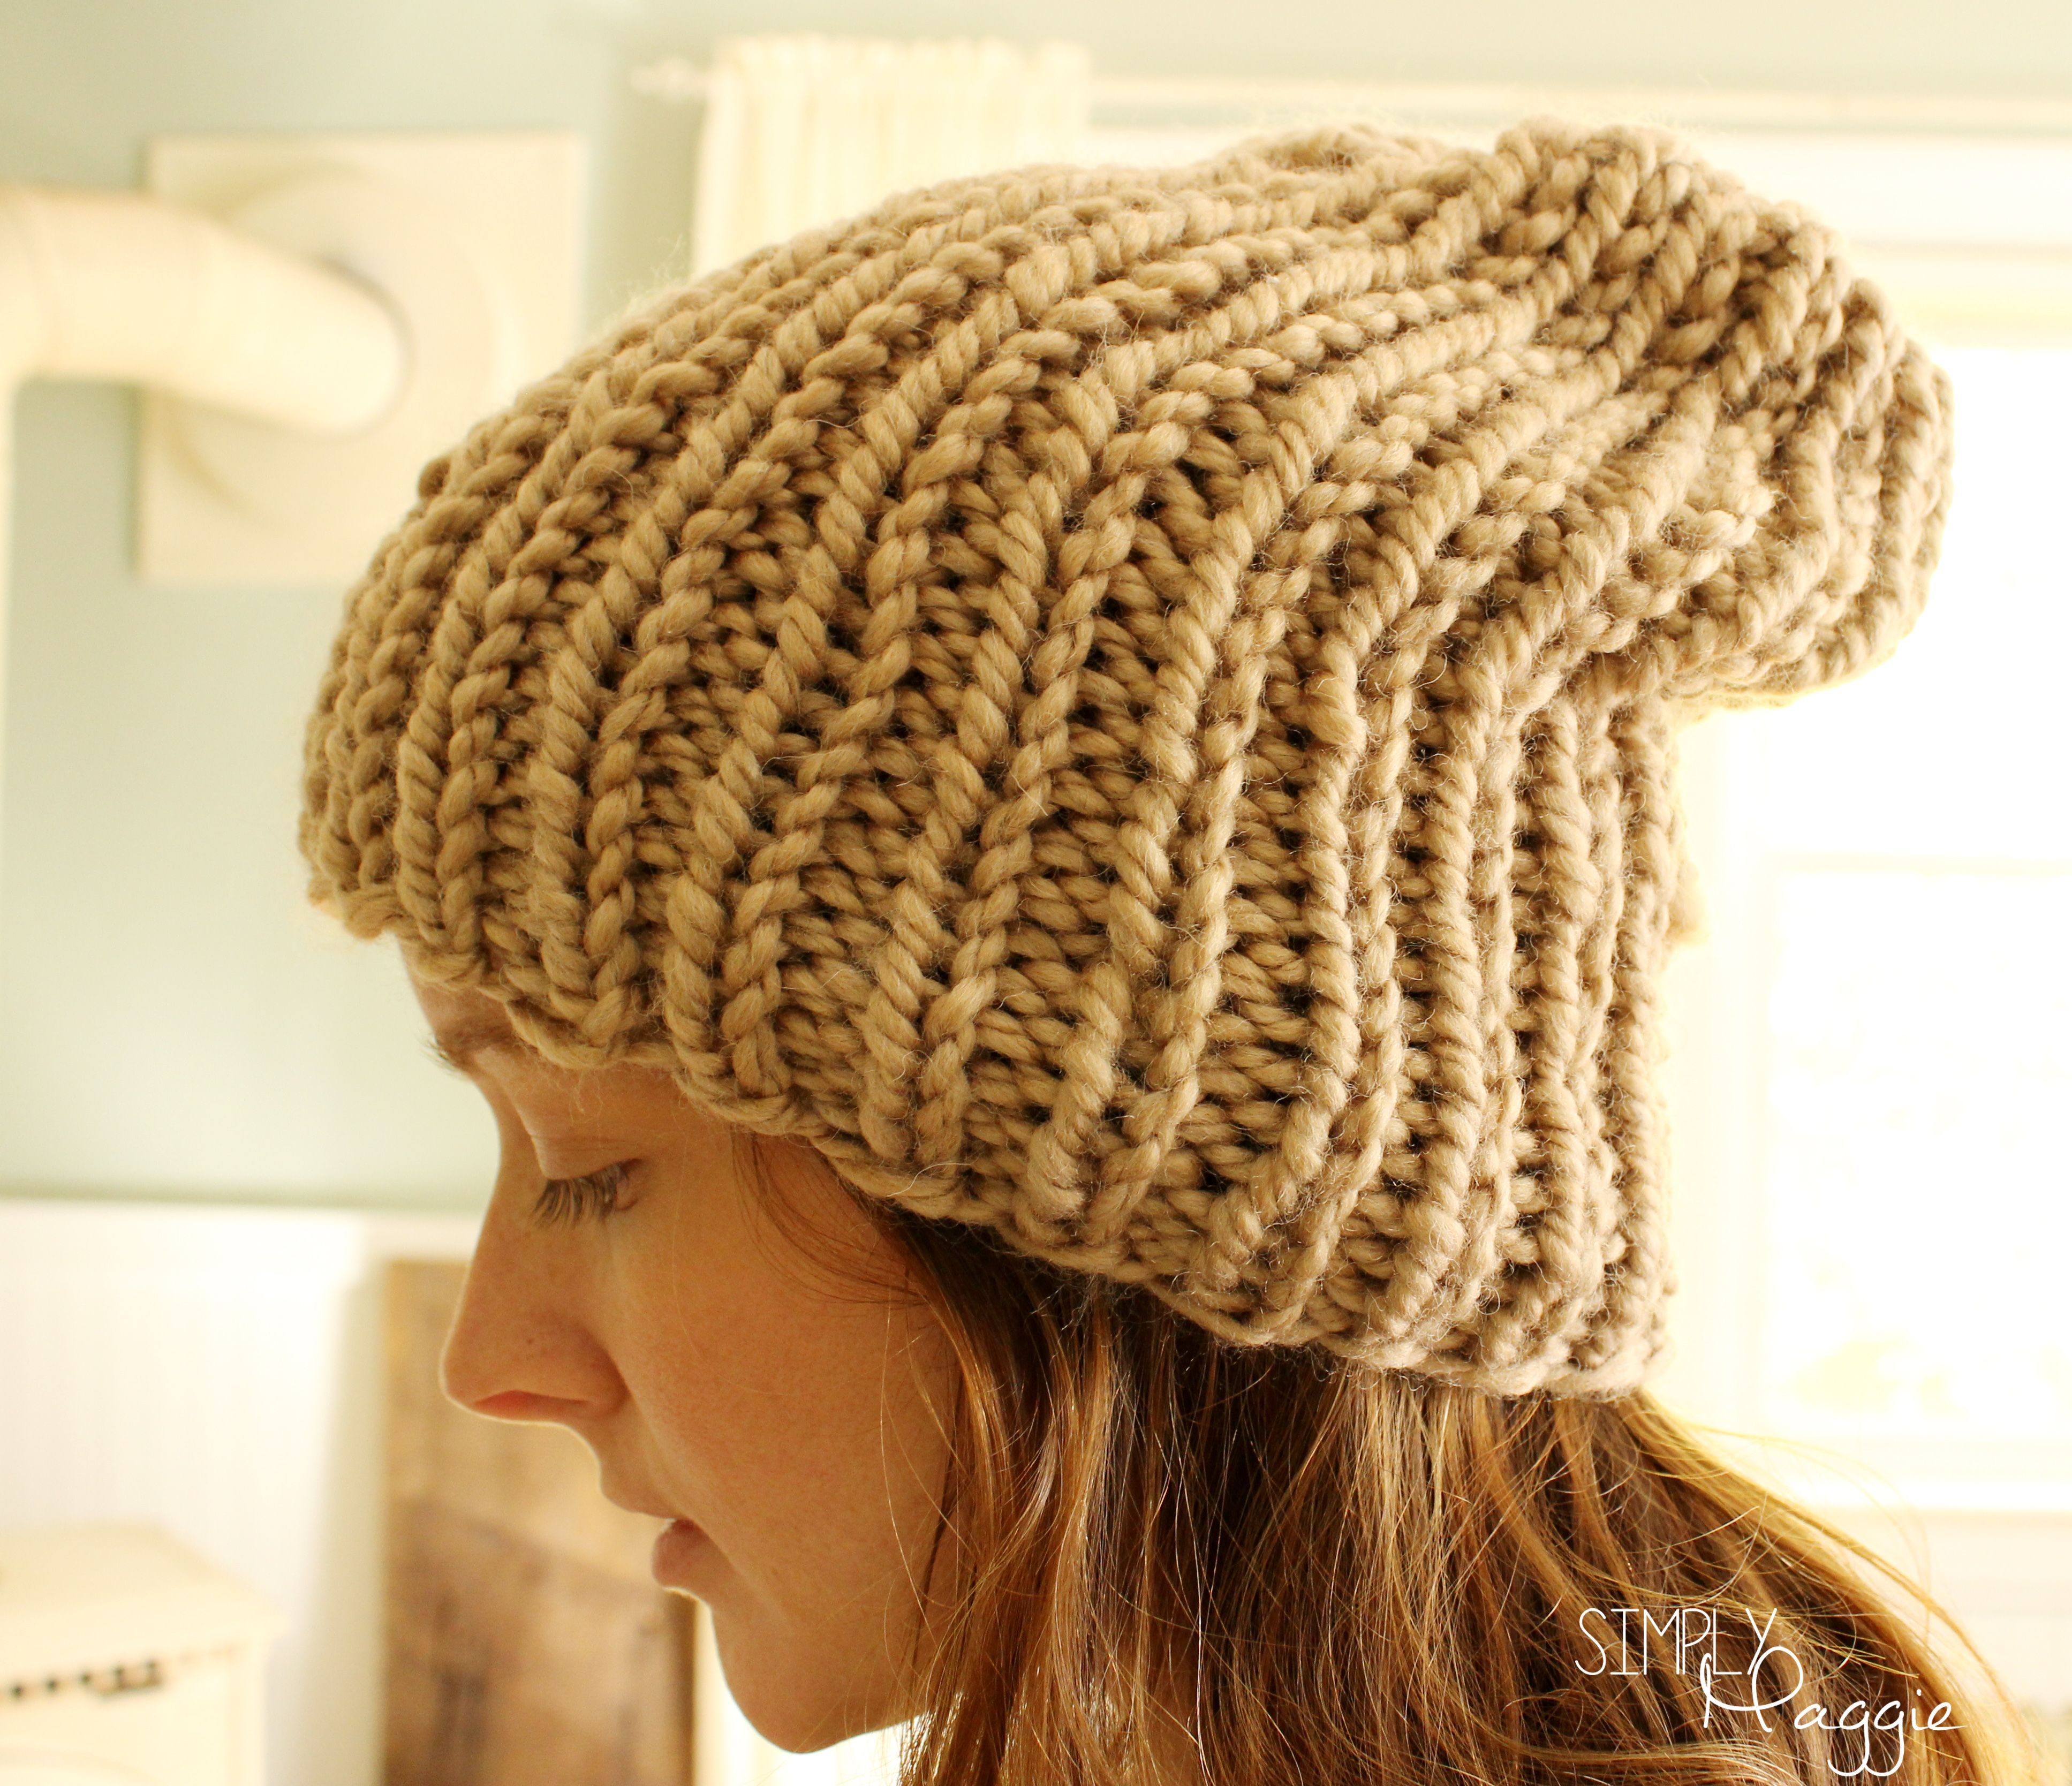 Slouchy knit purl hat pattern to make pinterest patterns slouchy knit purl hat pattern bankloansurffo Image collections